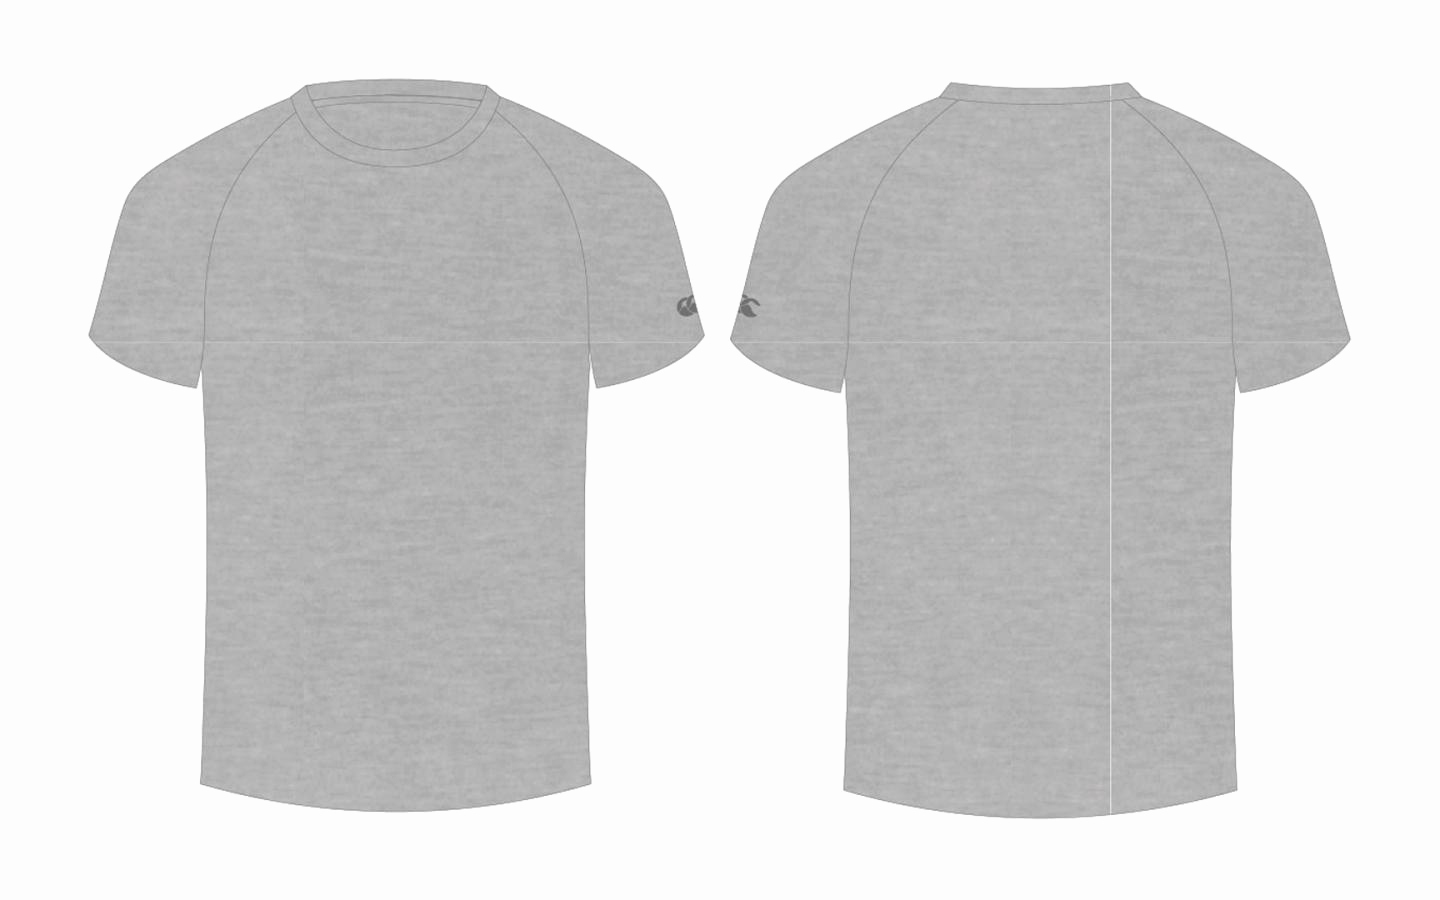 T Shirt Template Photoshop Luxury Blank Tshirt Template for Classroom In Gray Color Hd